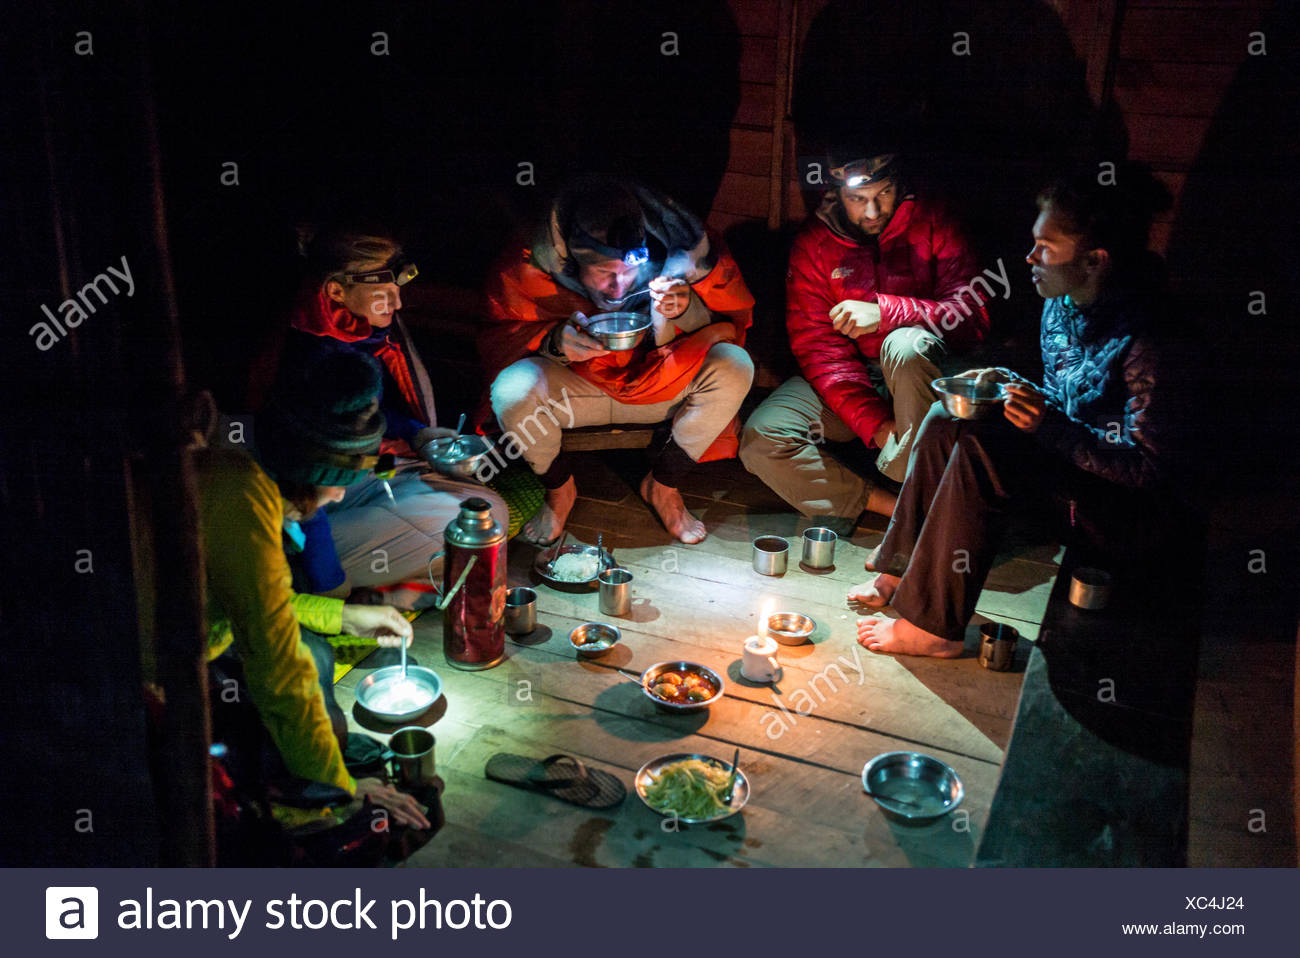 Expedition members share a nighttime meal. - Stock Image